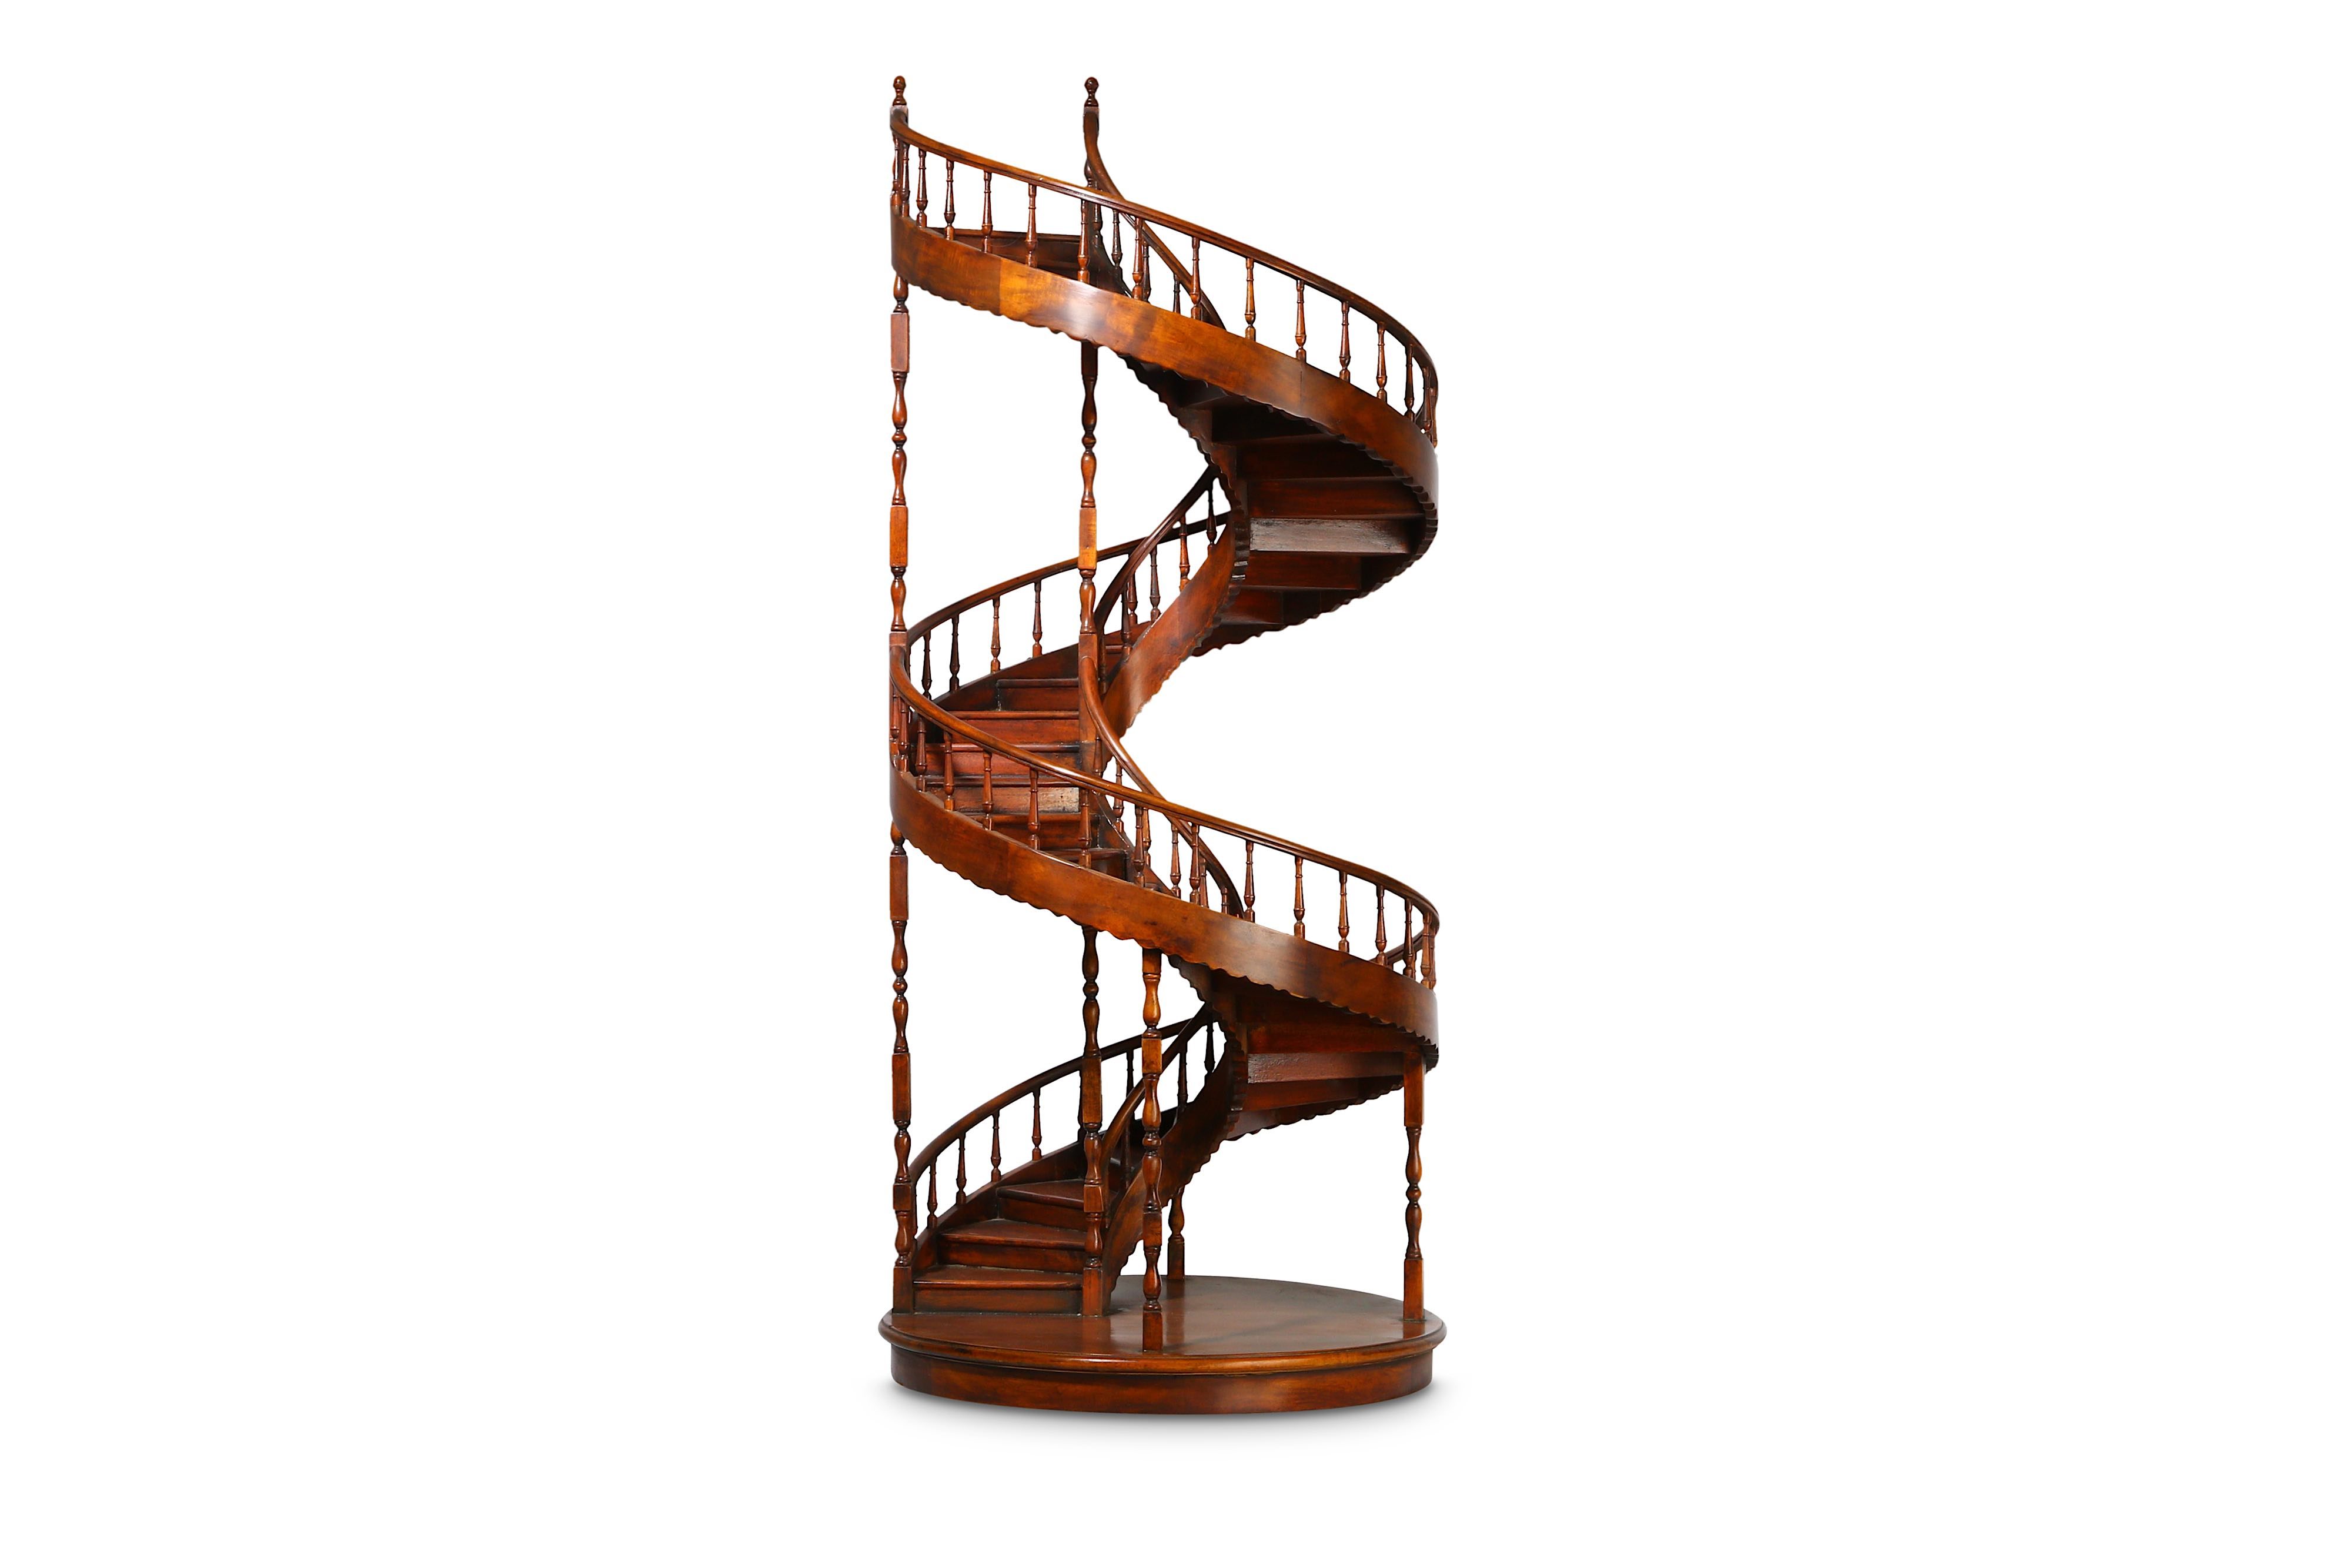 A LARGE EARLY 20TH CENTURY MAHOGANY APPRENTICE'S ARCHITECTURAL MODEL OF A SPIRAL STAIRCASE